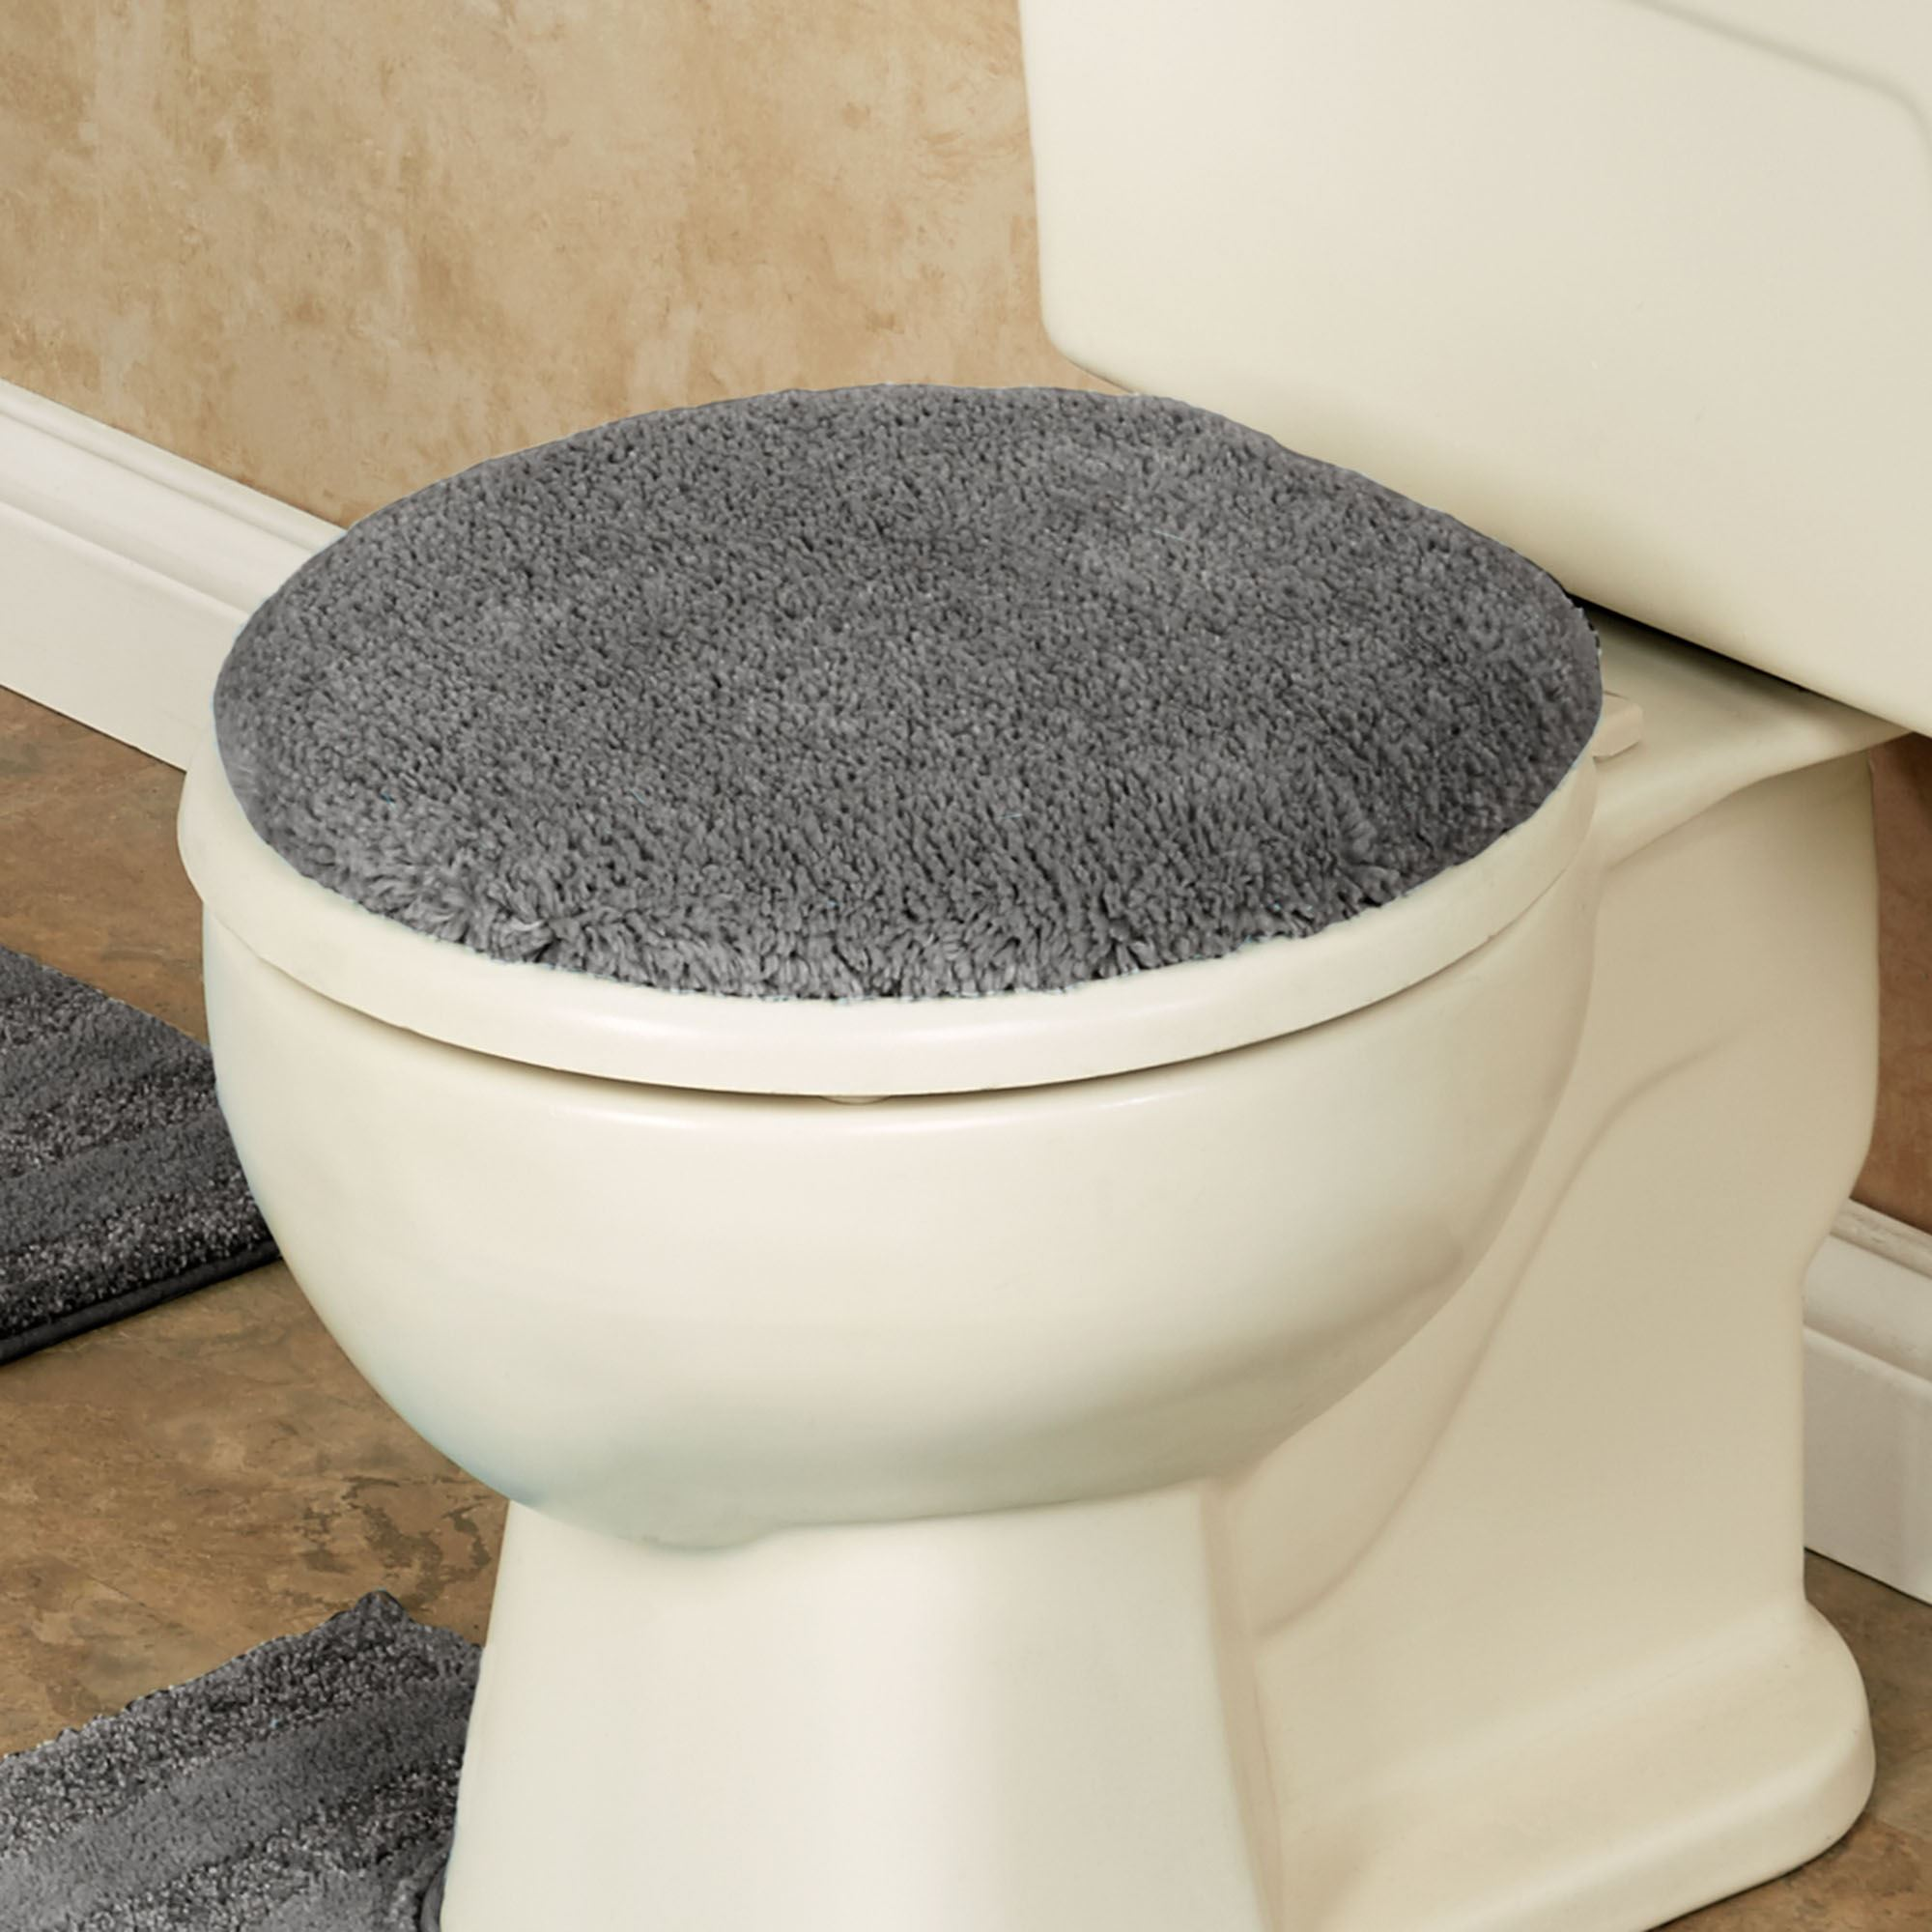 Phenomenal Comforel Toilet Lid Covers Or Striped Bath Rugs Ibusinesslaw Wood Chair Design Ideas Ibusinesslaworg